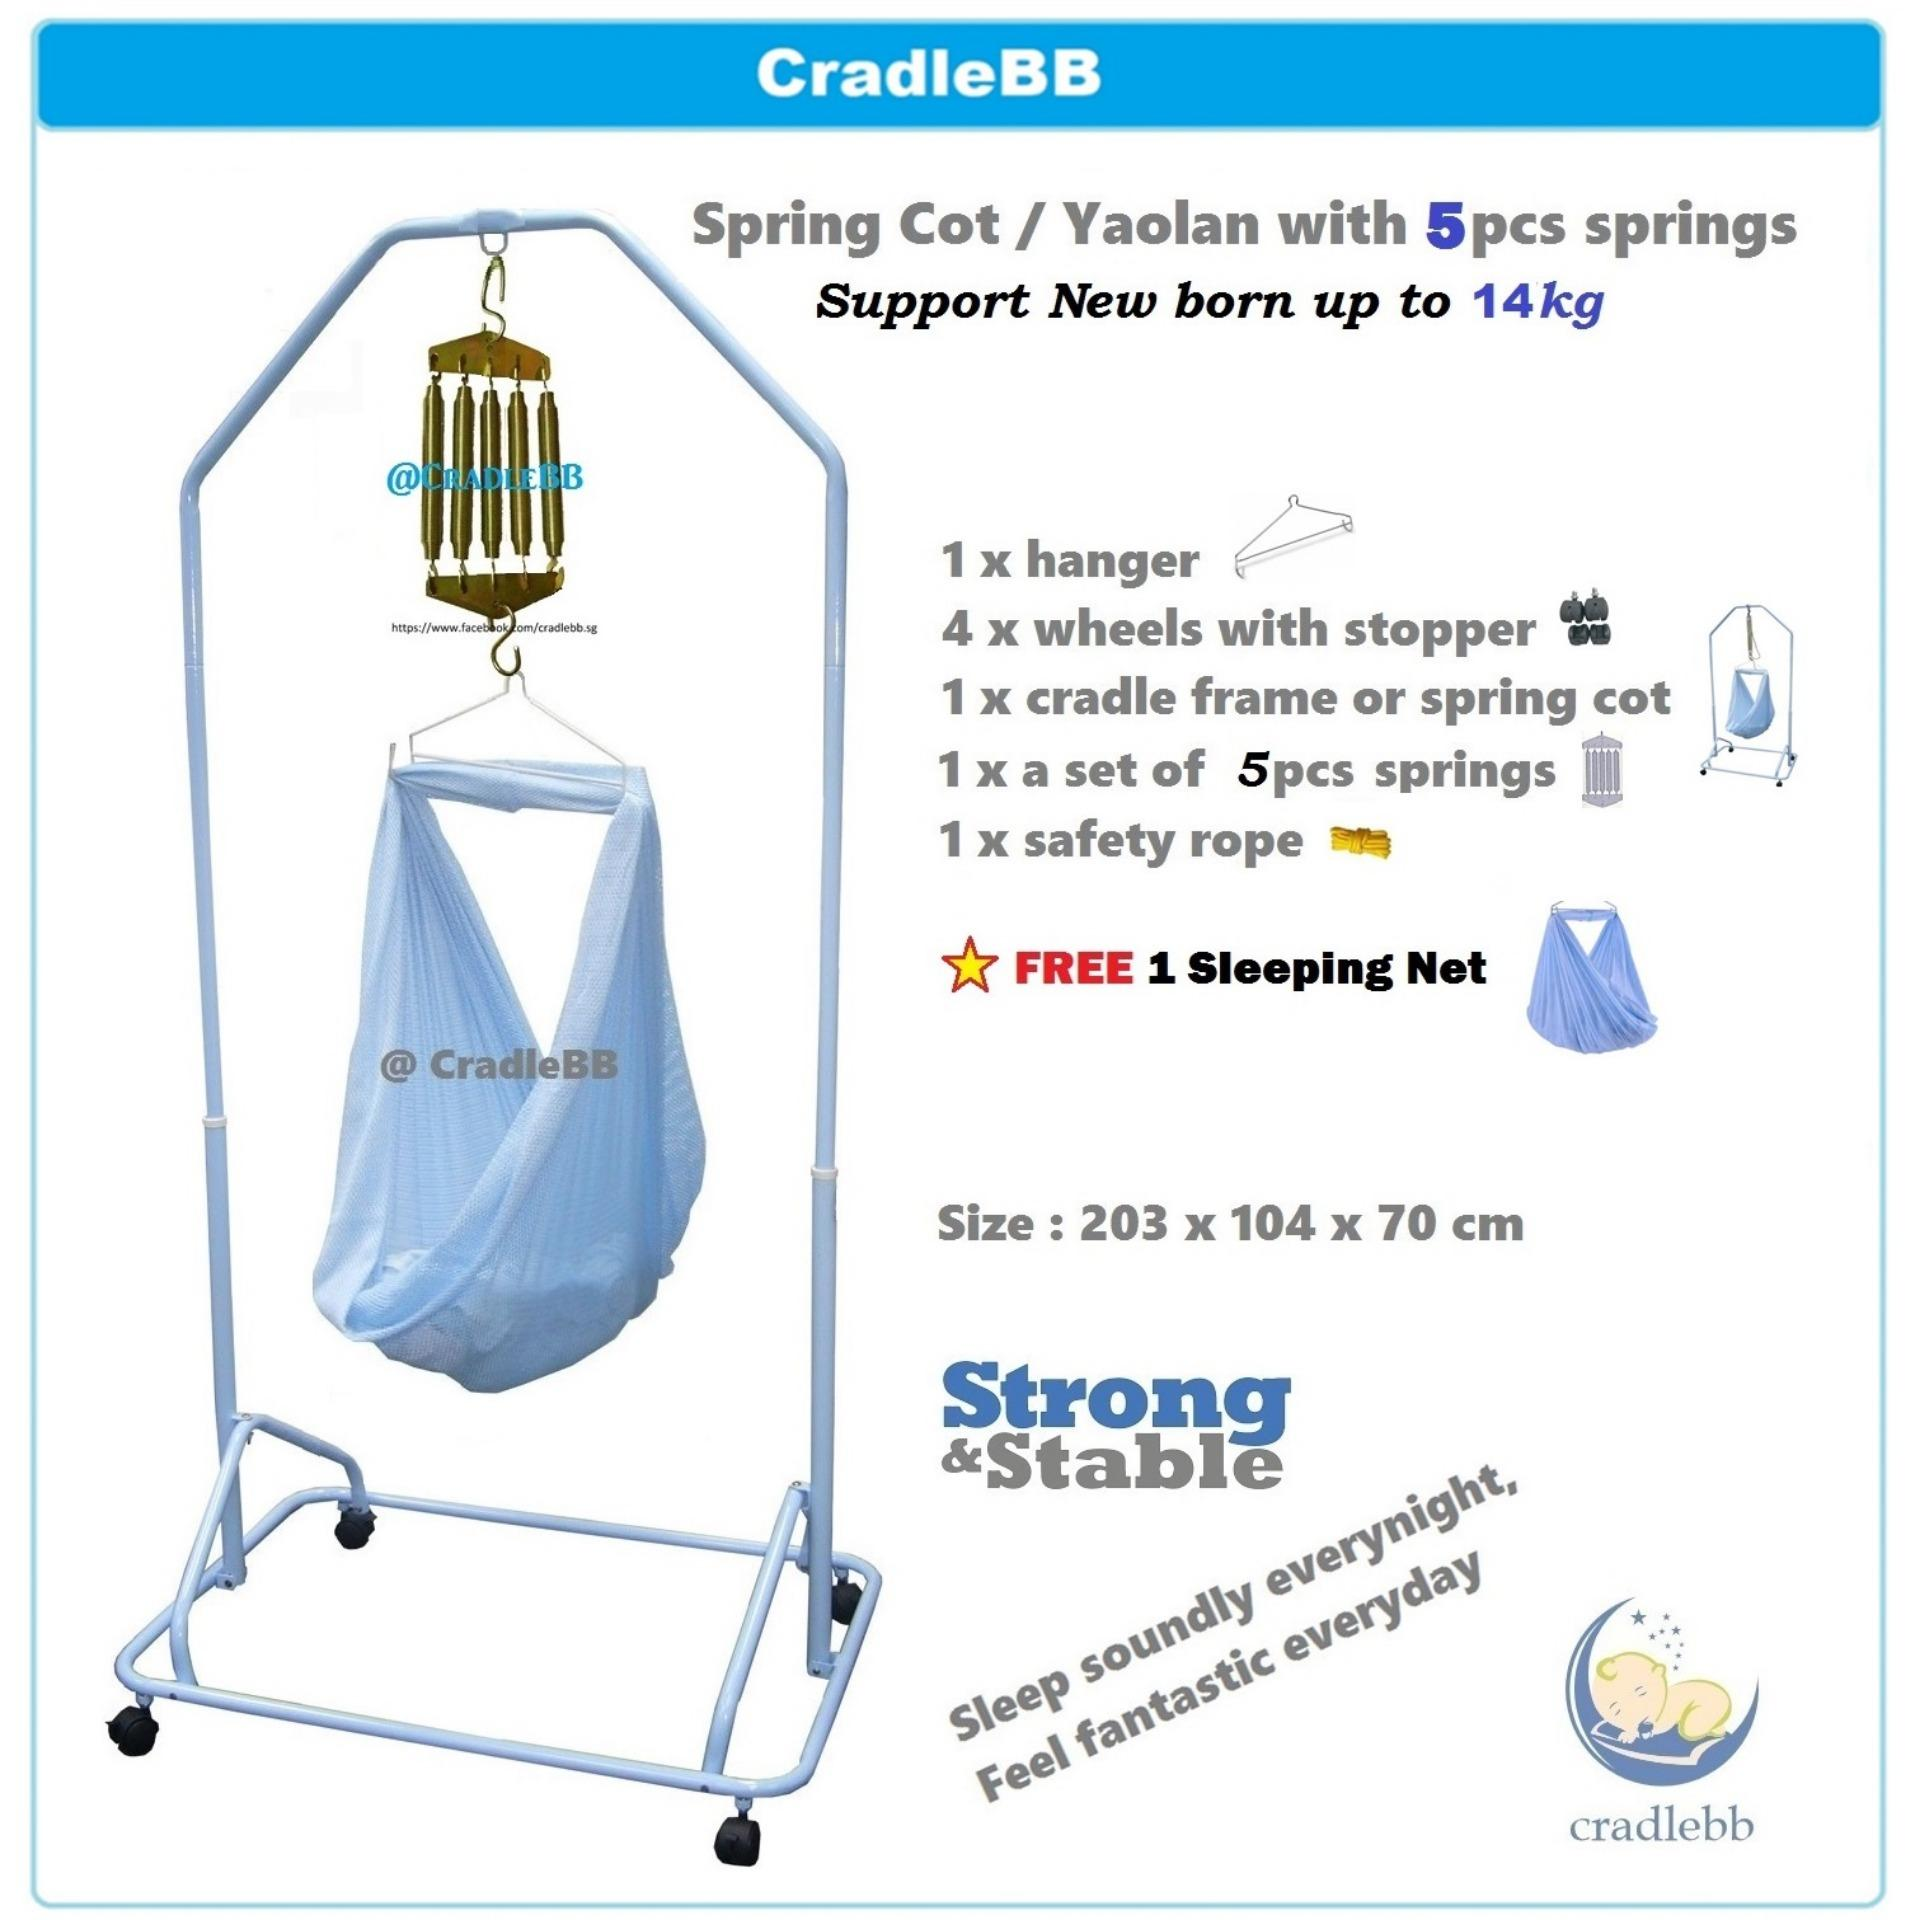 Baby Cradle/ Yaolan + 5 Pcs Spring Support New Born Up To 16kg (free 1 Net) By Cradlebb.